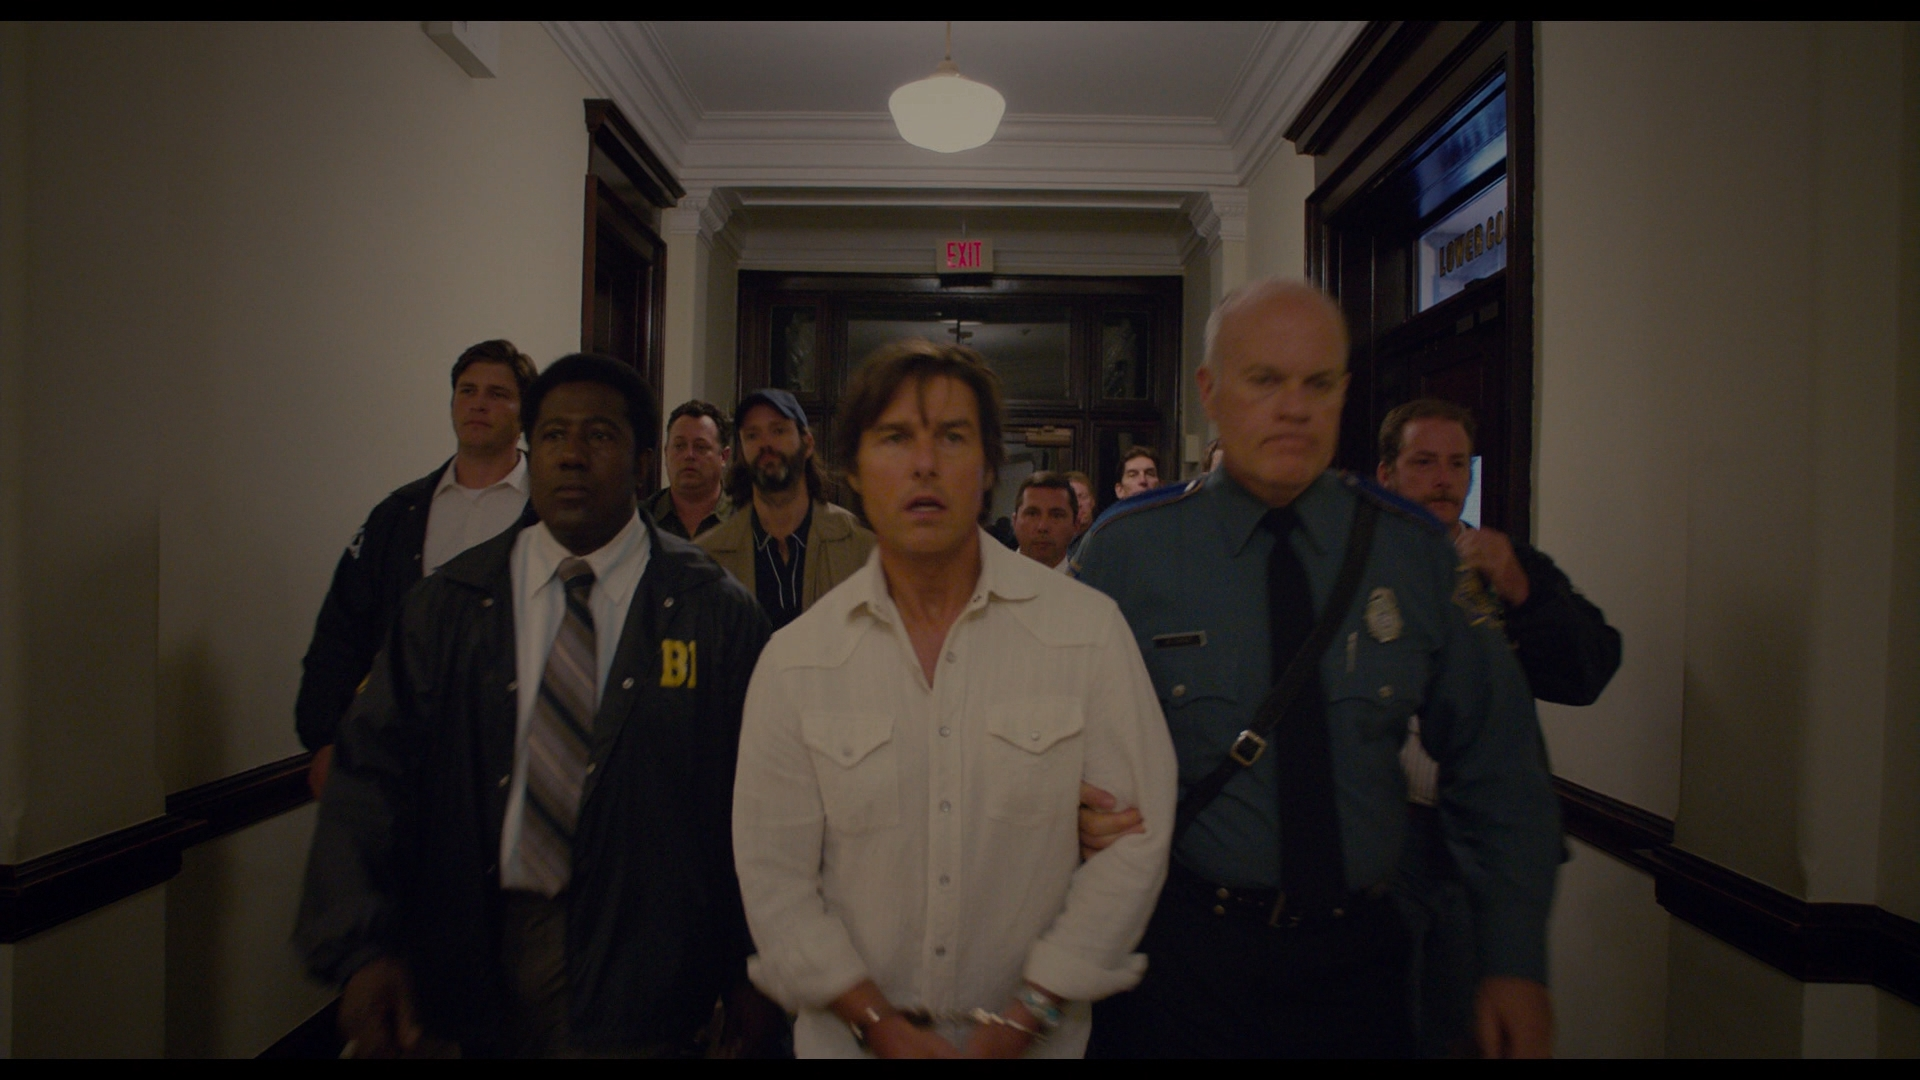 AMERICAN MADE (2017) - Barry Seal's (Tom Cruise) Costume - Image 17 of 23